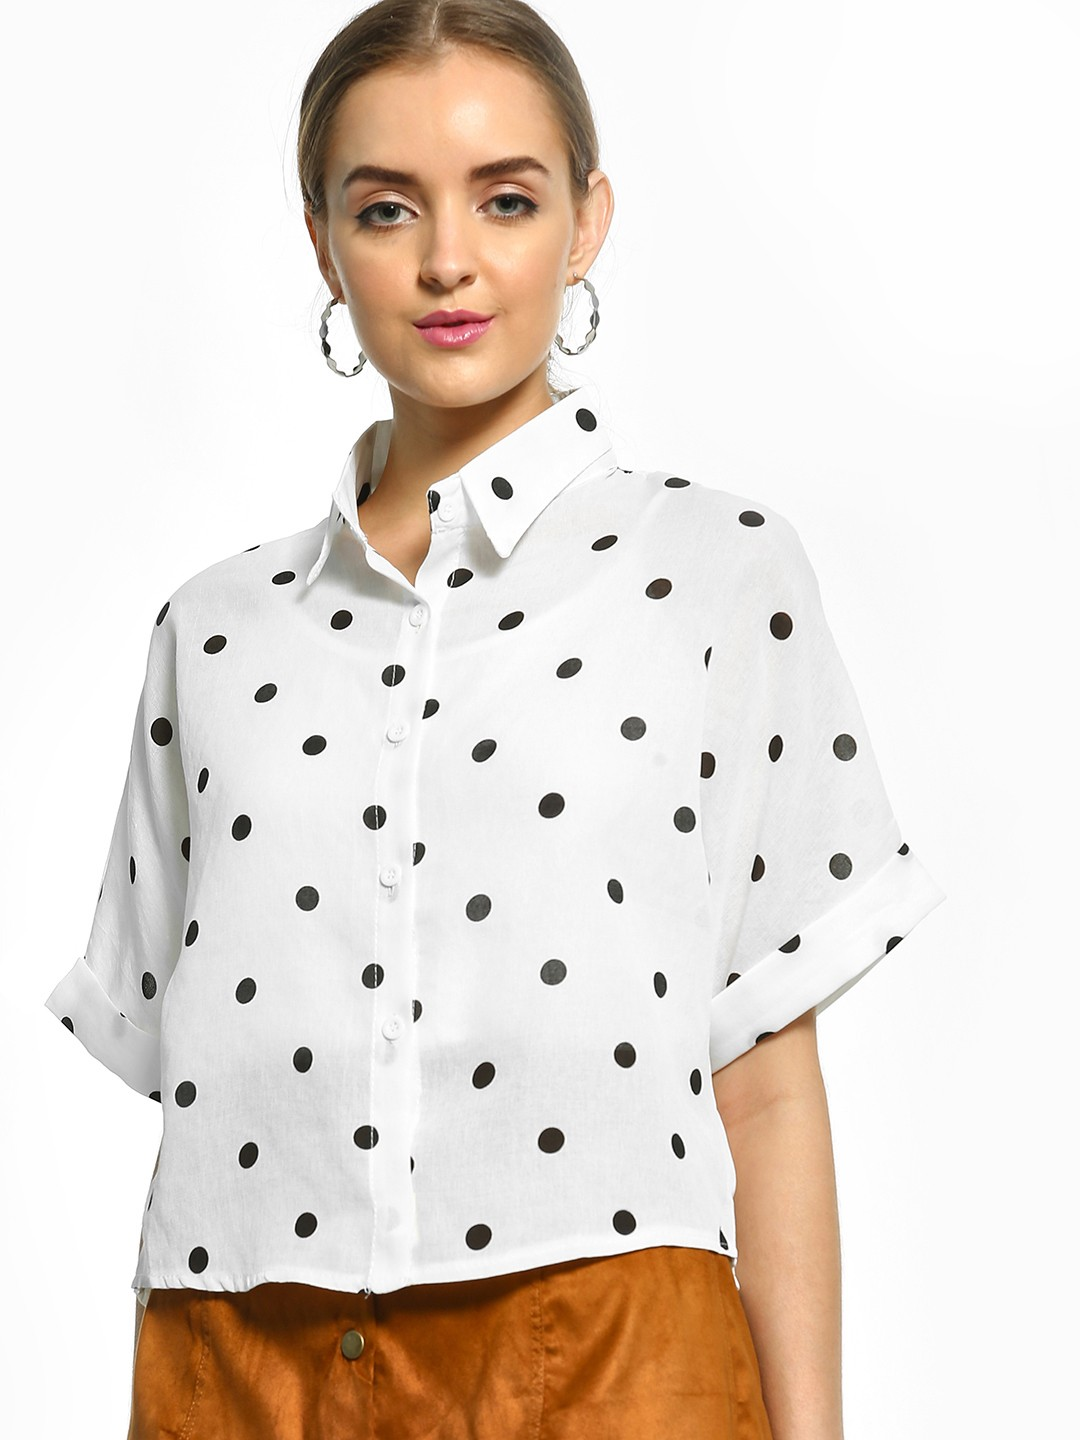 EmmaCloth White Polka Dot Print Shirt 1